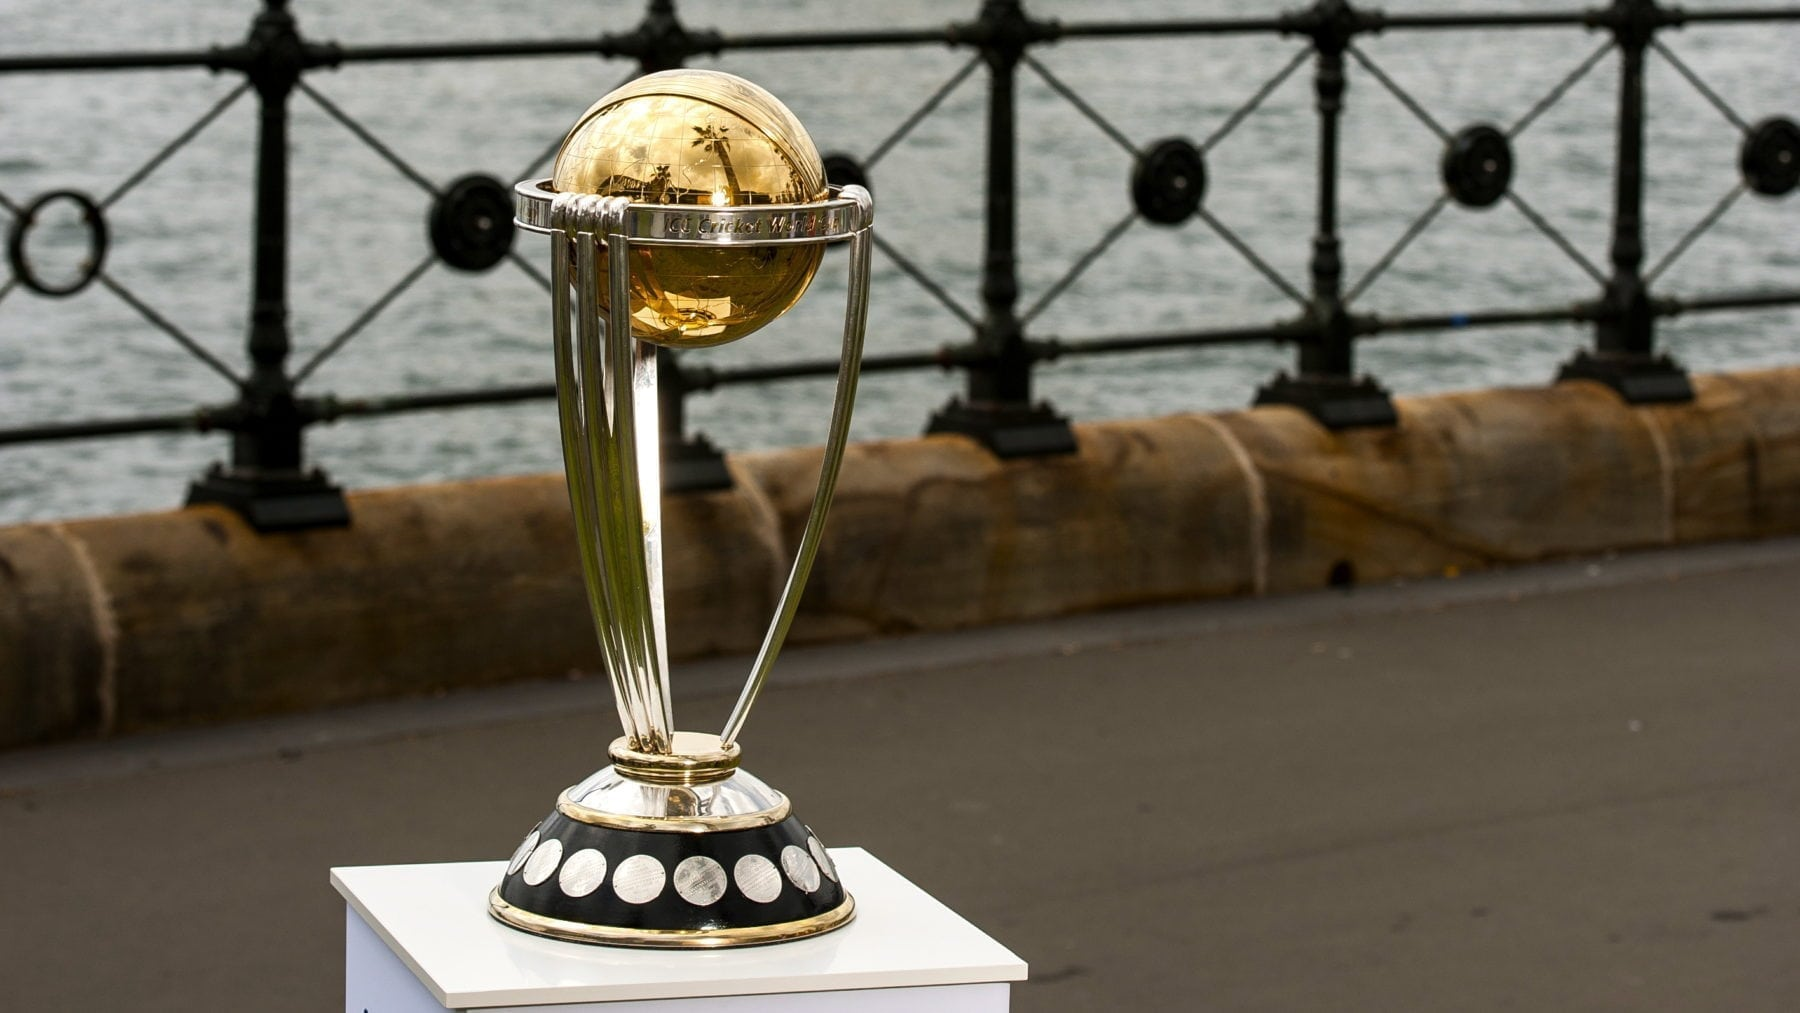 eassy on cricket world cup 2011 cricket cup the 2011 icc cricket world cup was the tenth cricket world cup it was played in india, sri lanka, and (for the first time) bangladesh.